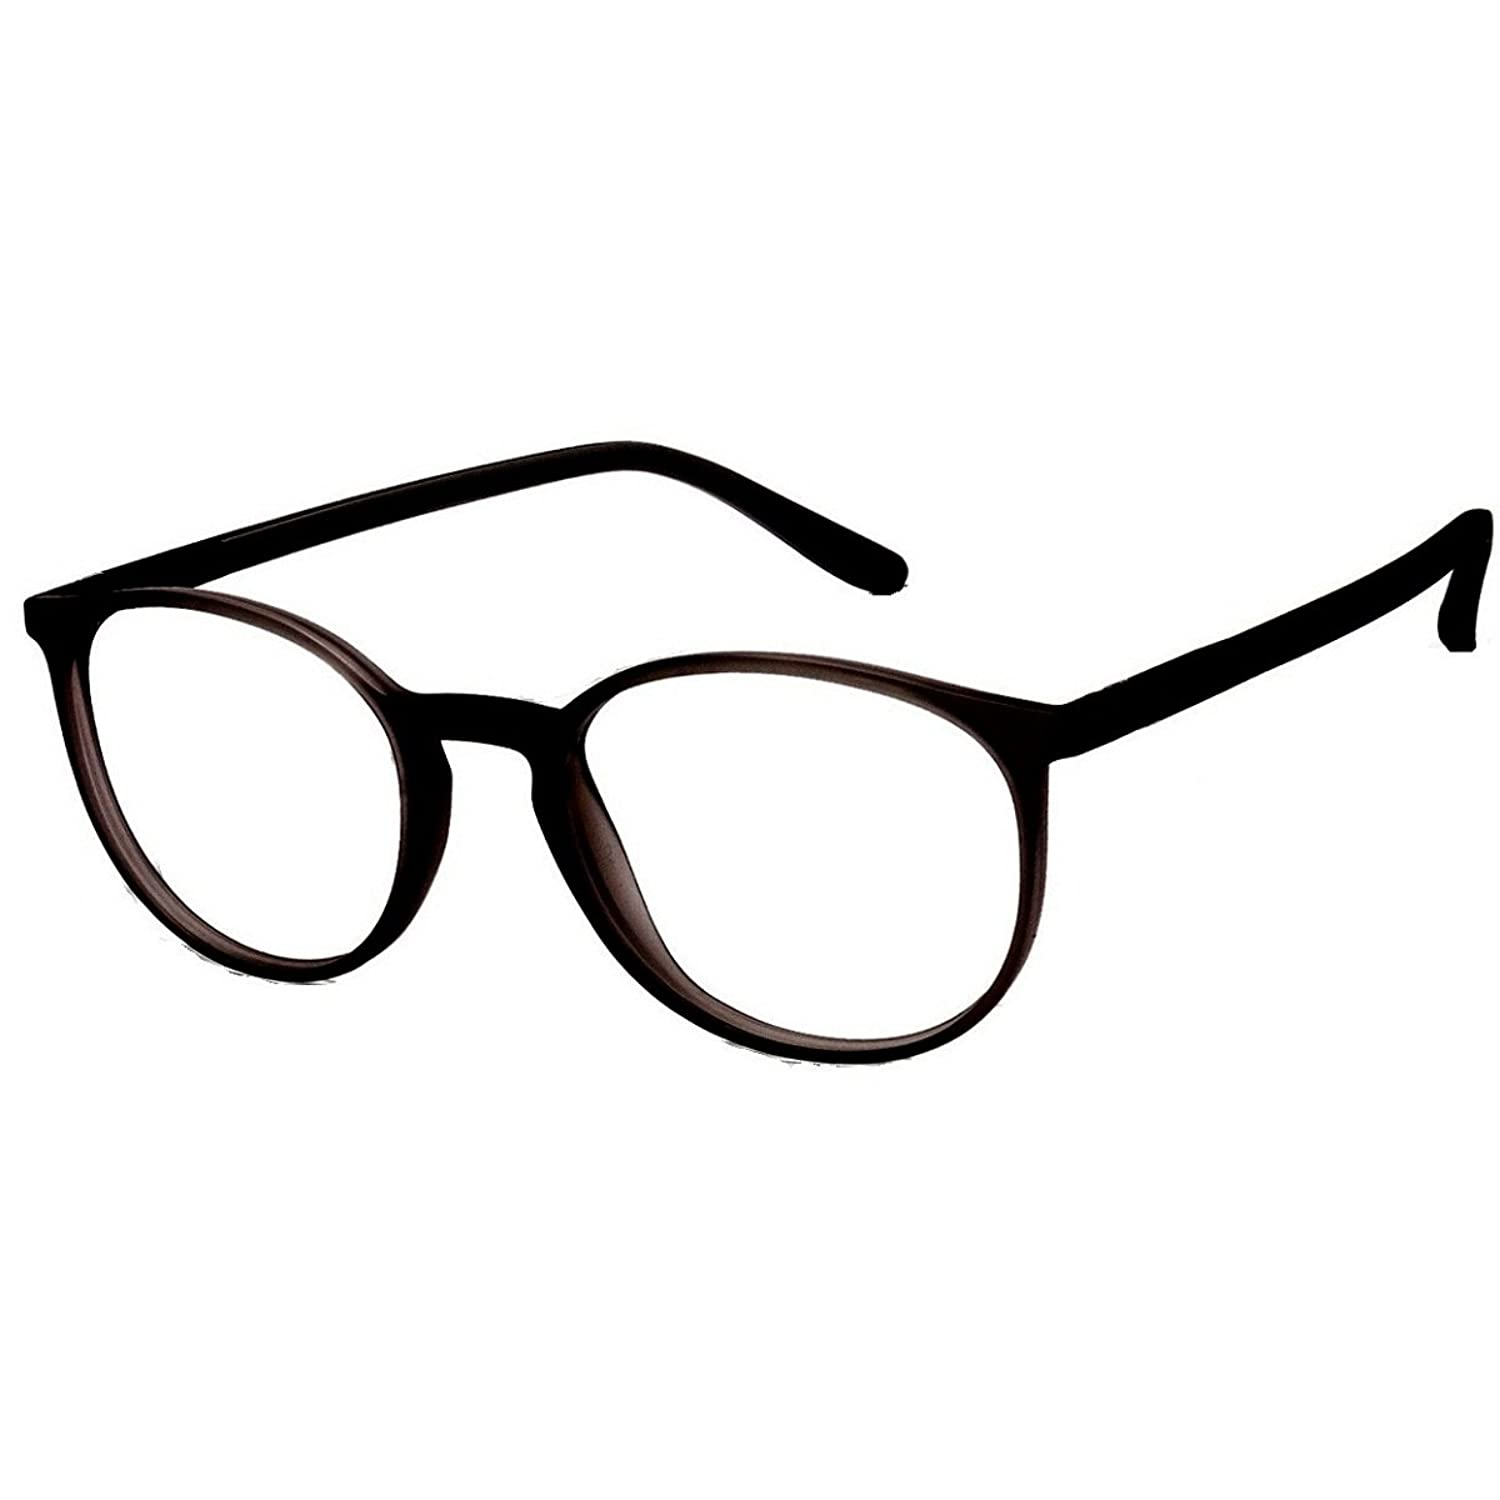 3ed191c94b Spectacle Frames  Buy Spects online at best prices in India - Amazon.in